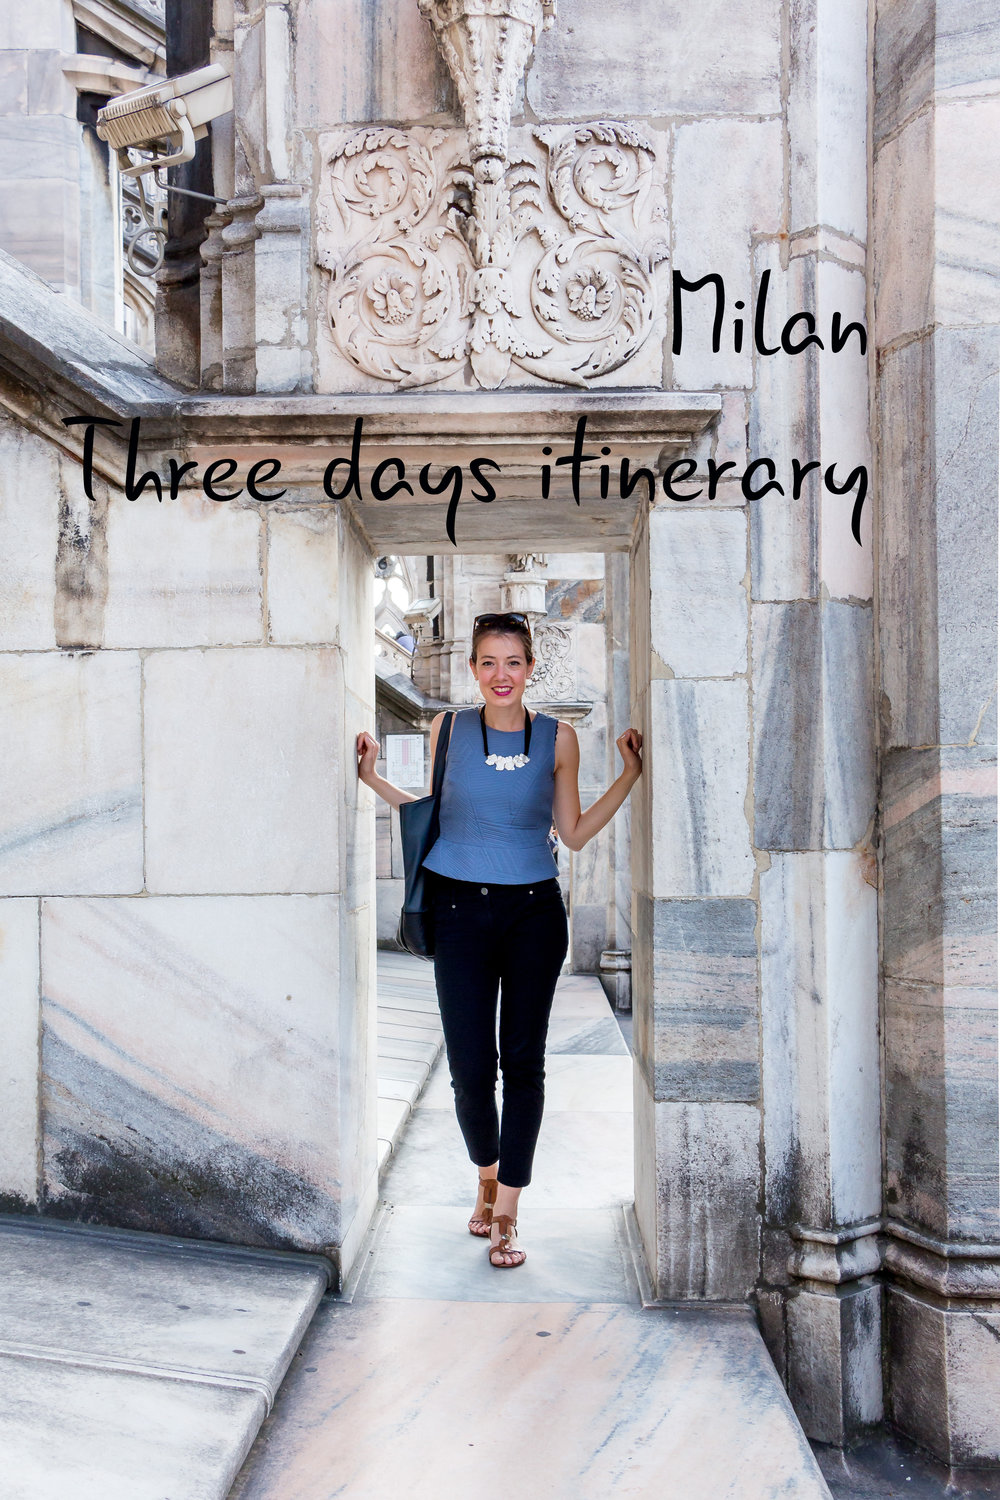 Three days in Milan